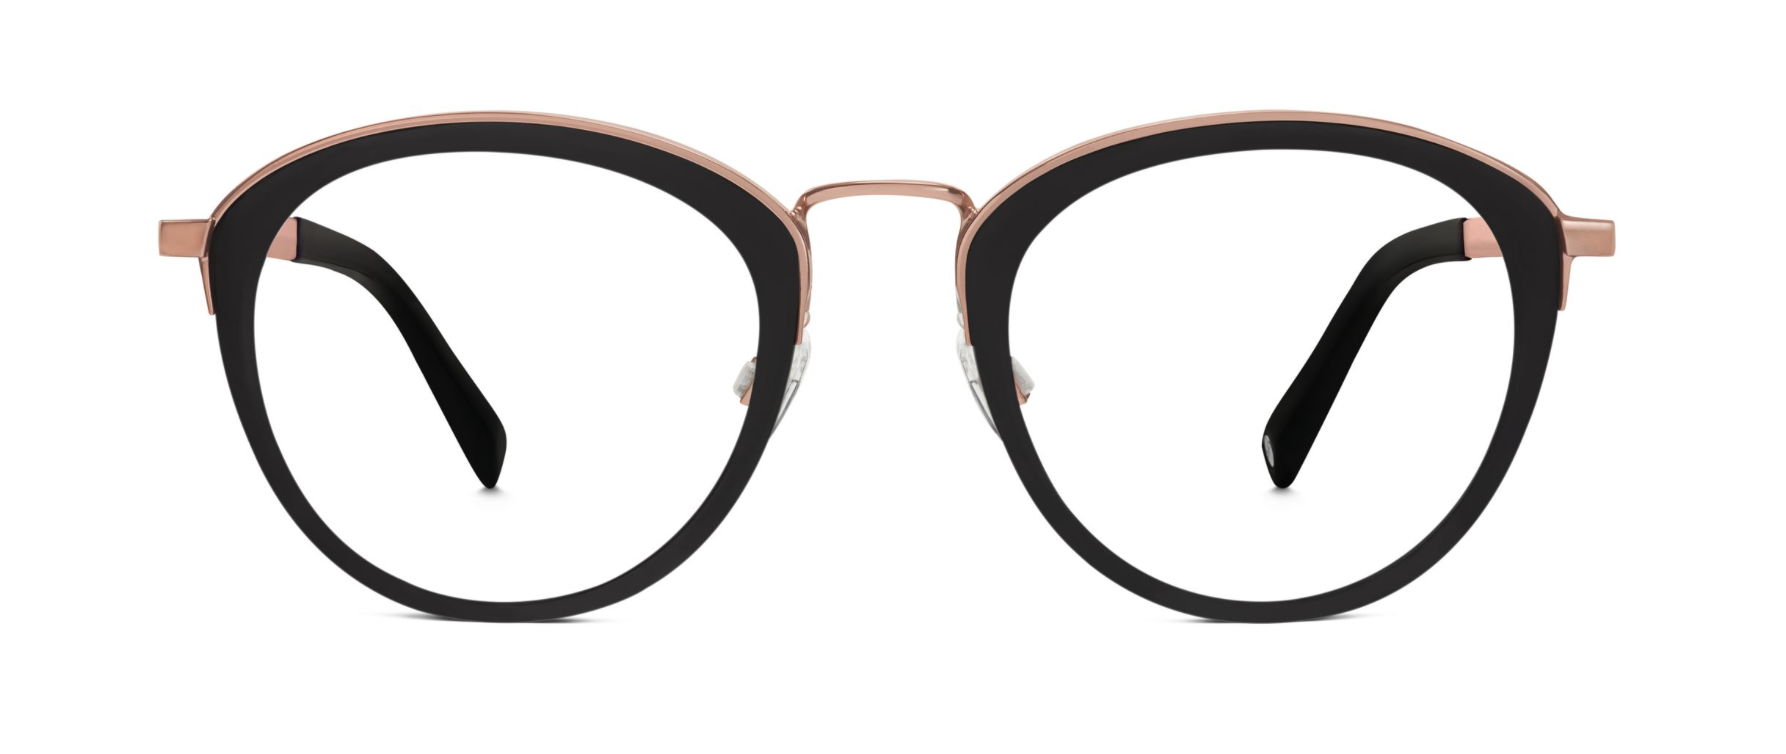 Warby Parker's new fall collection will make you want to